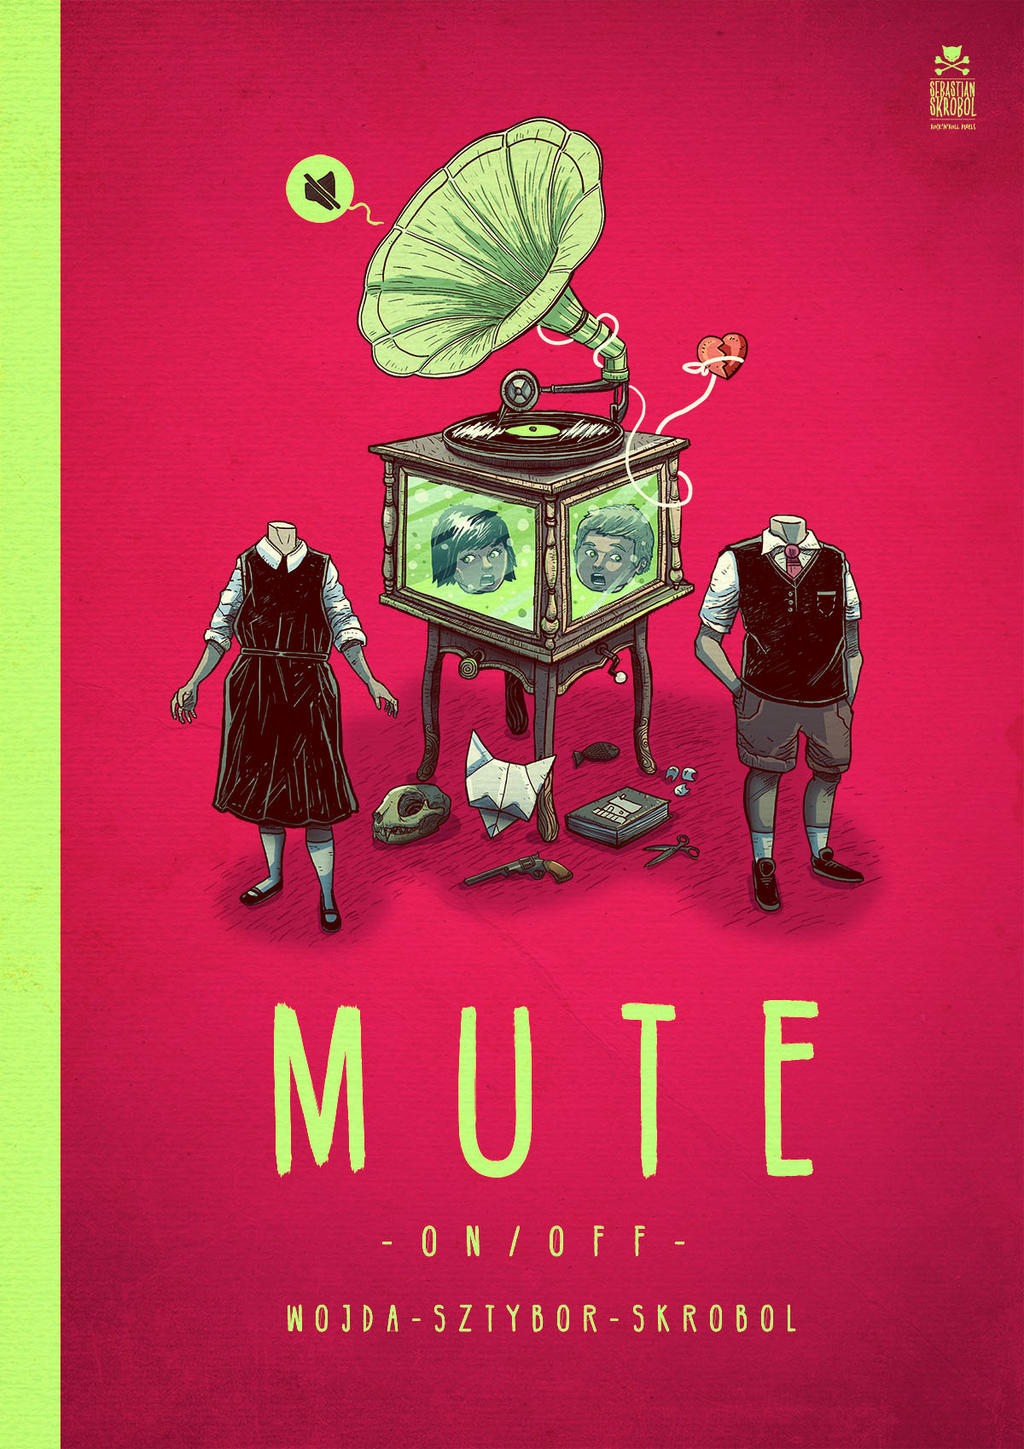 Mute on/off by motsart